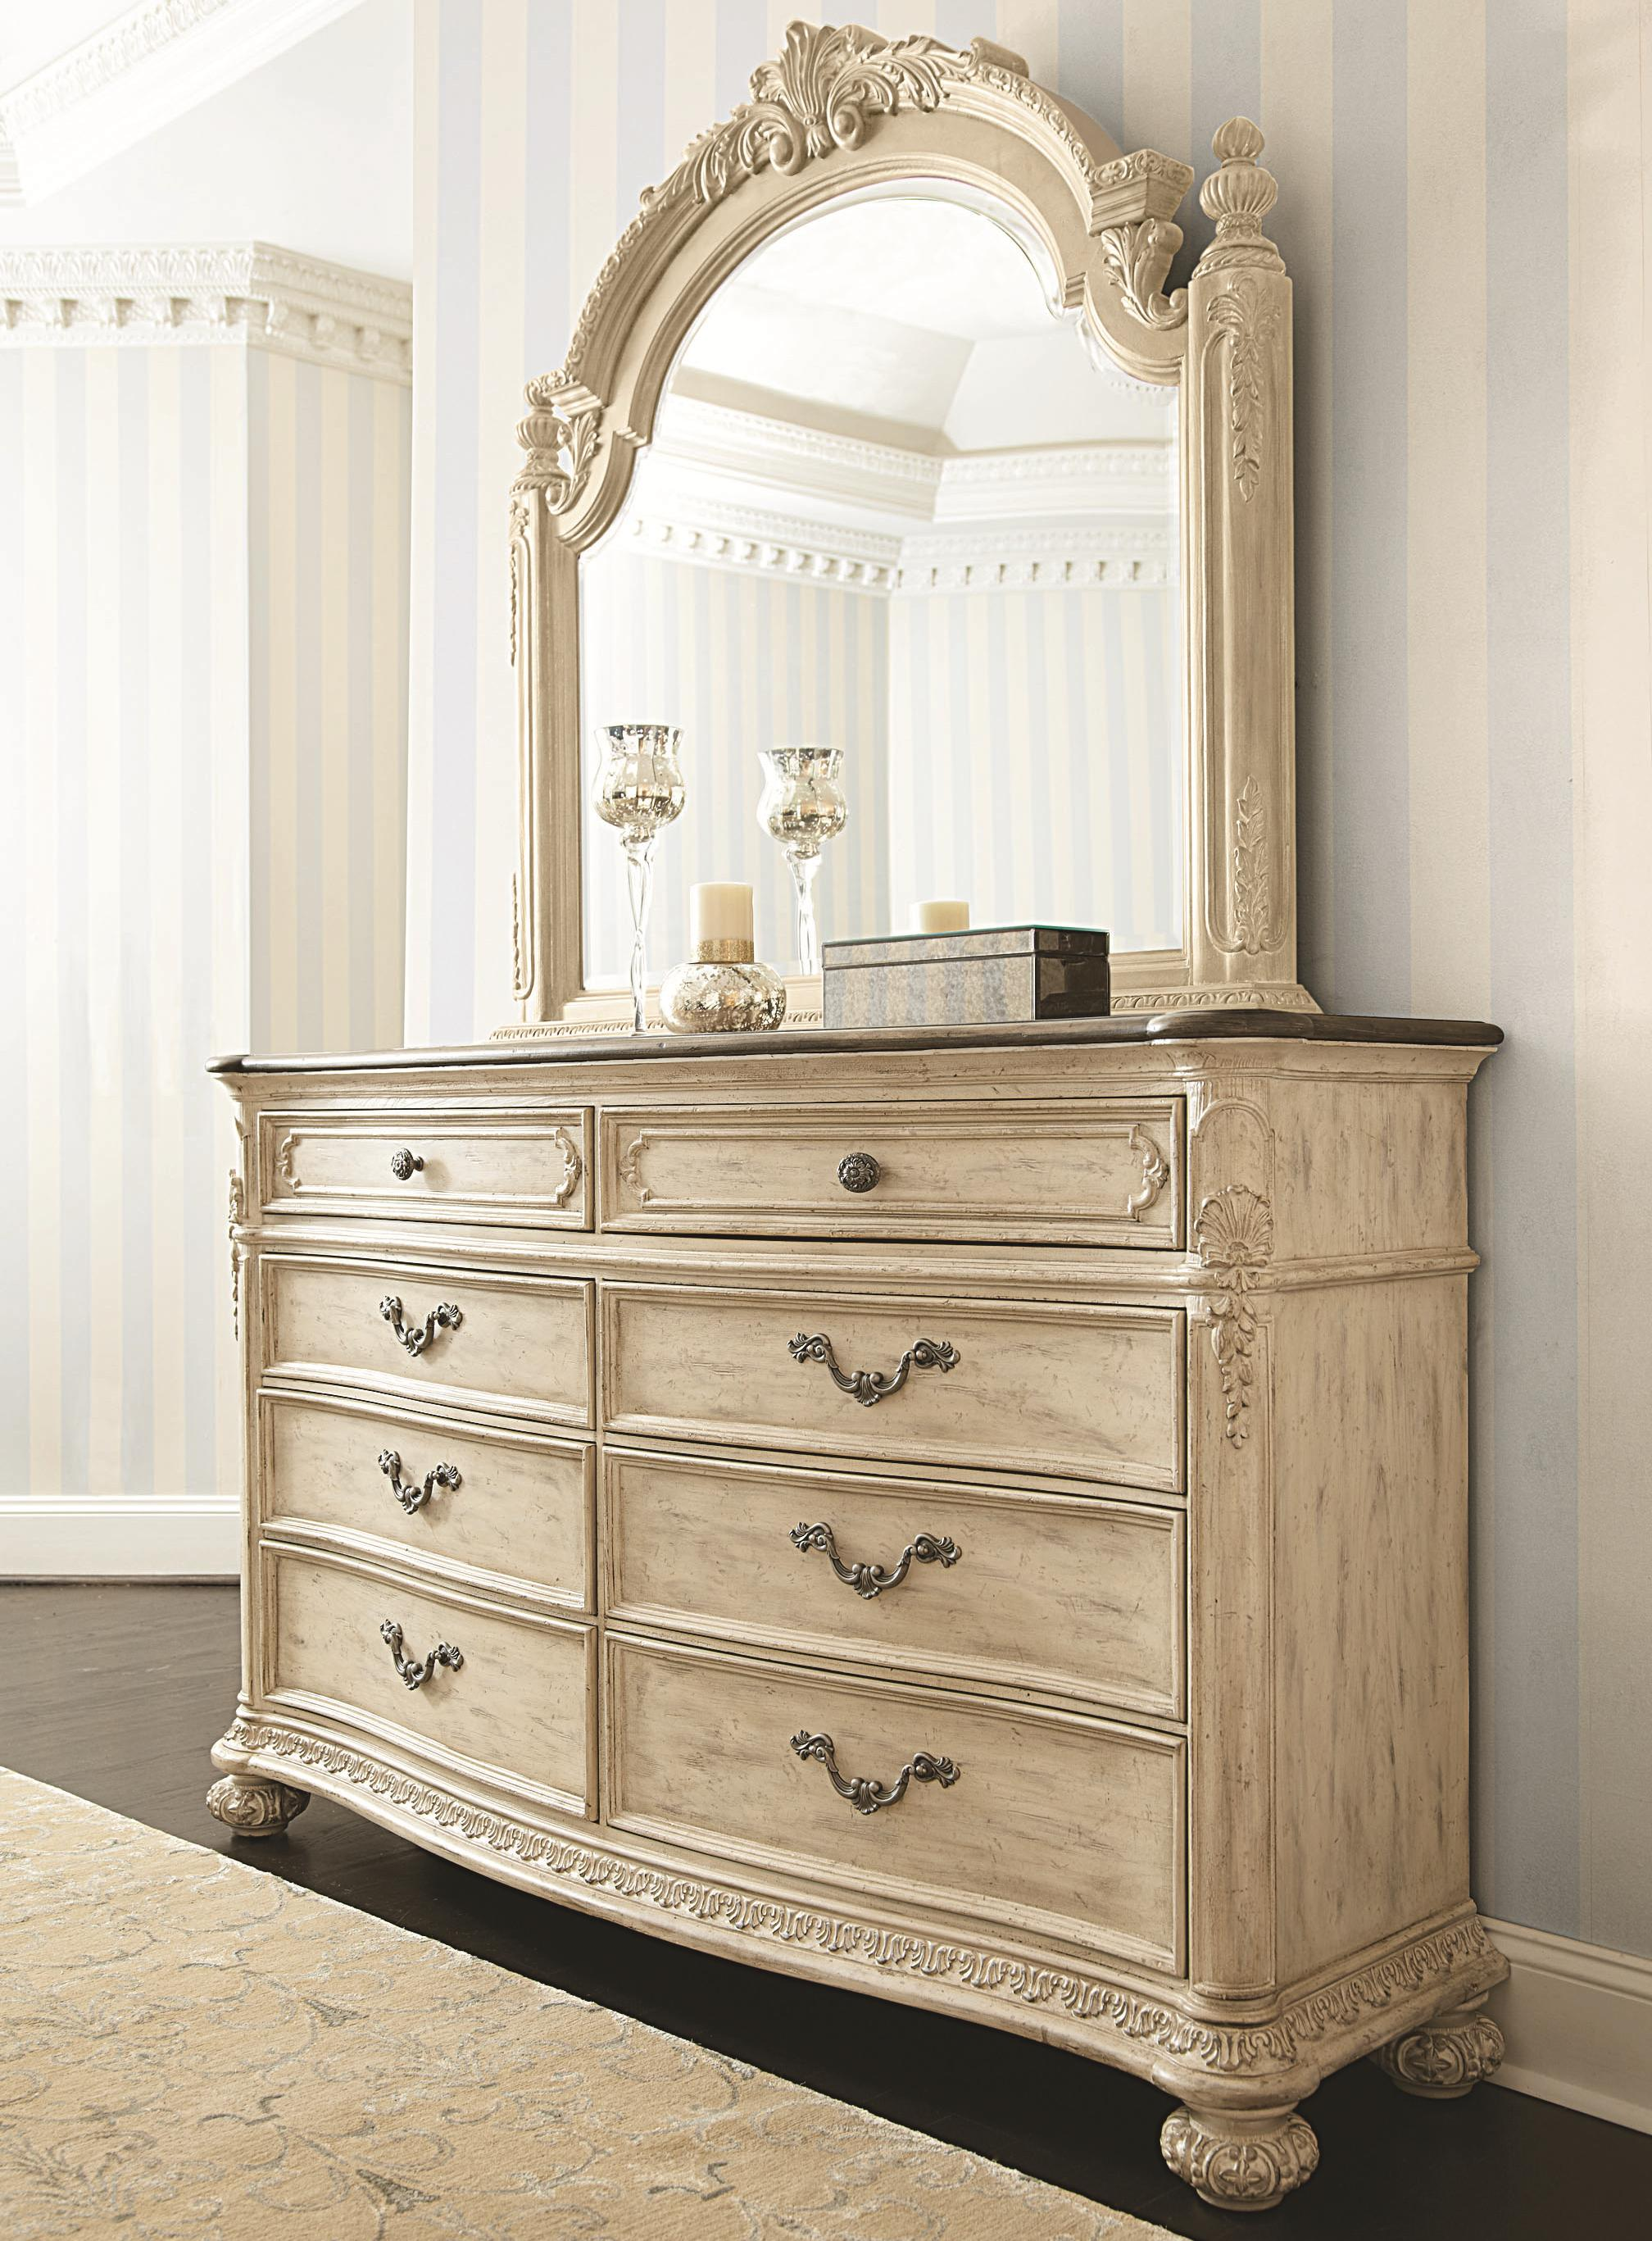 American Drew Jessica McClintock Home - The Boutique Collection Dresser & Mirror - Item Number: 217-130W+021W